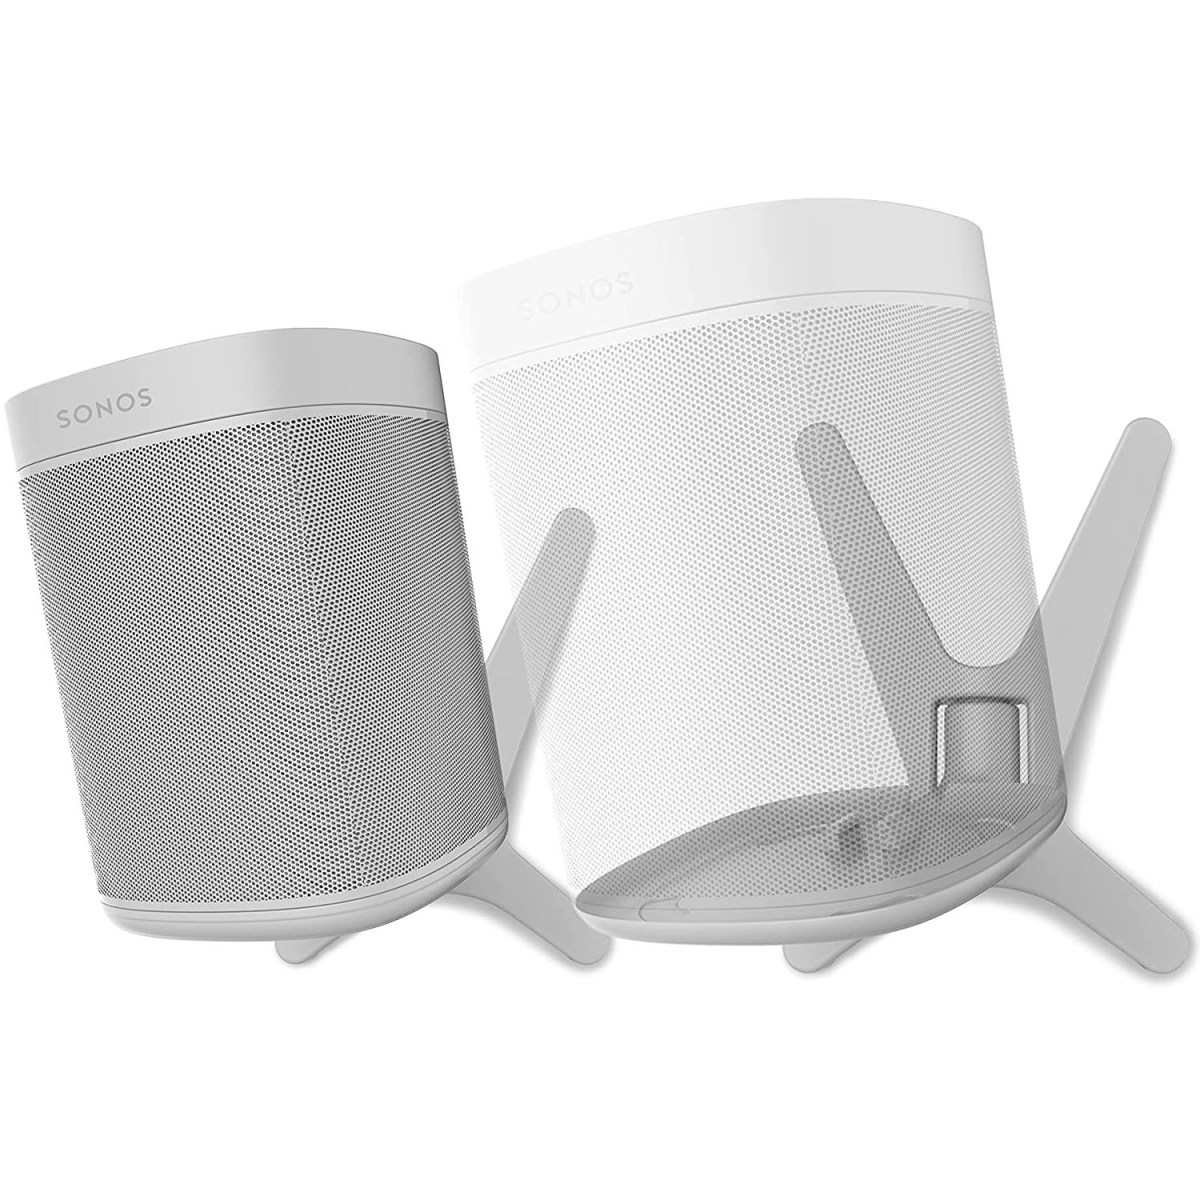 2 x ONE, ONE SL, Play:1 - Premium X Wall Mount Bracket - White - Compatible with SONOS ONE, ONESL & Play:1